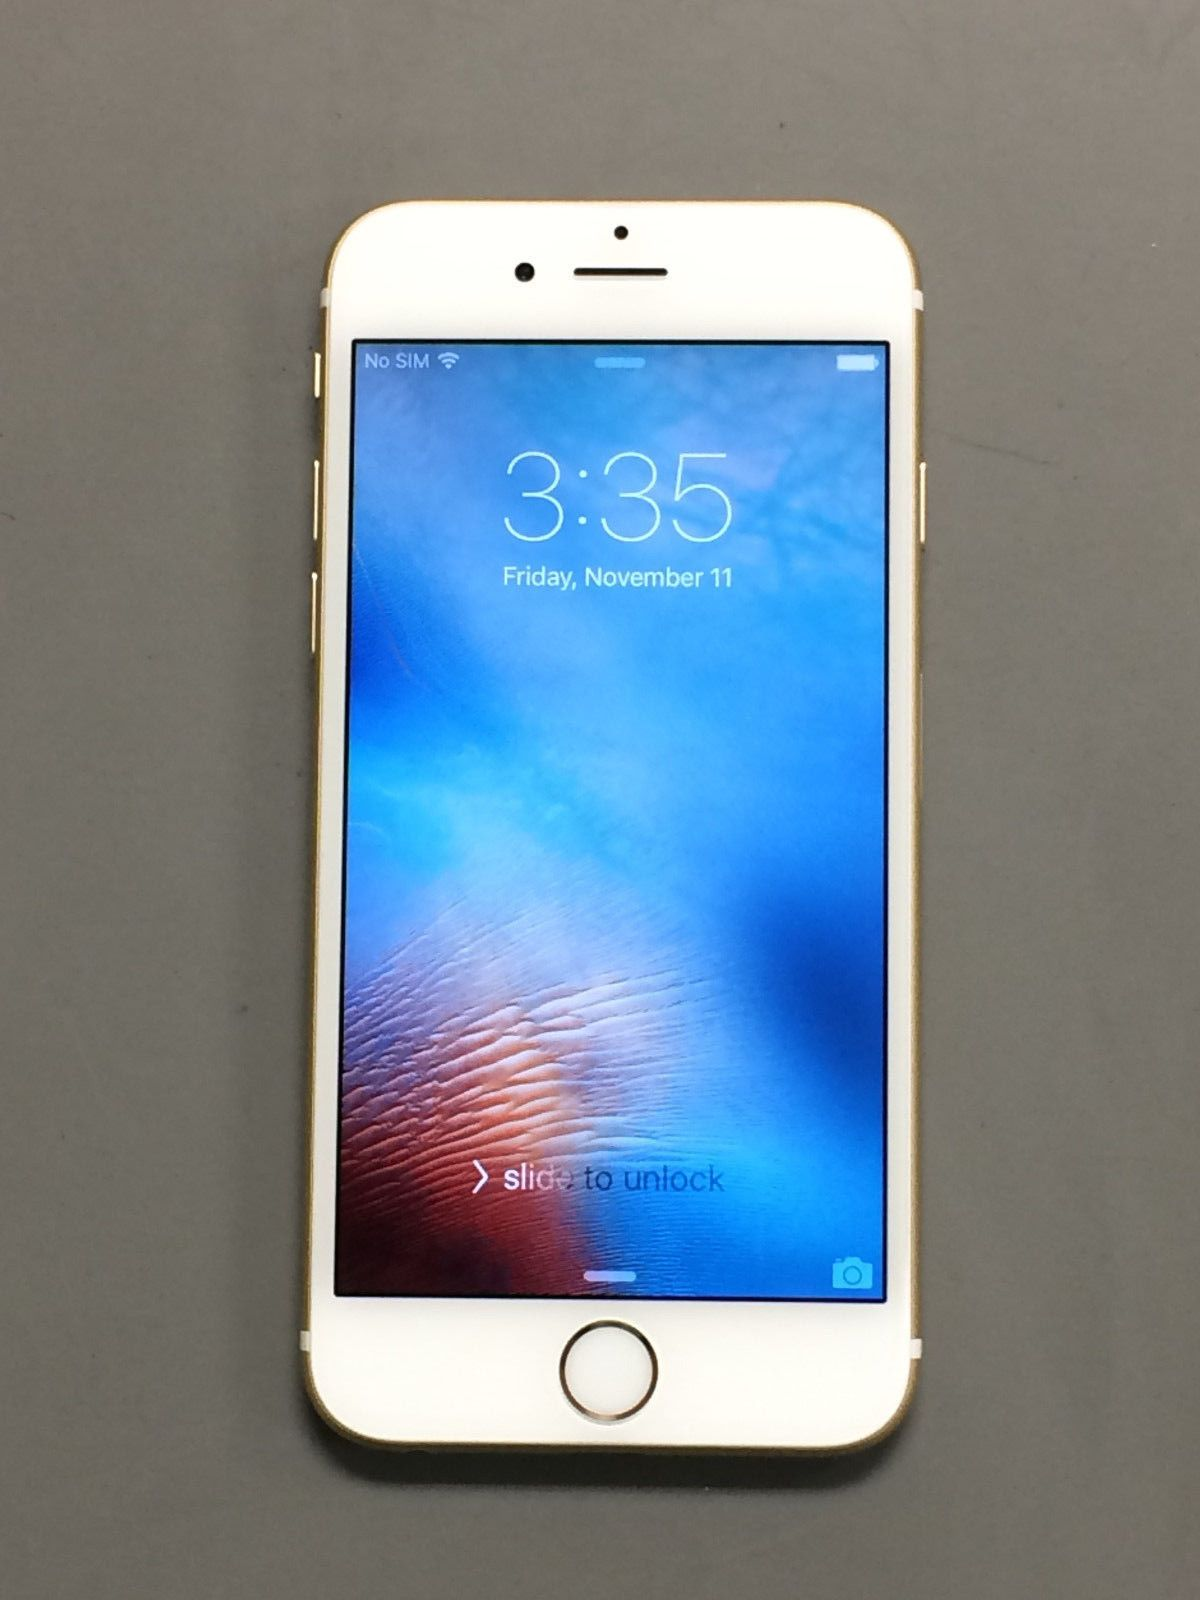 iPhone 6s - 16GB - Gold (Unknown Carrier) - Great Condition! https://t.co/huVRBXBshJ https://t.co/h3IXNRYhwM